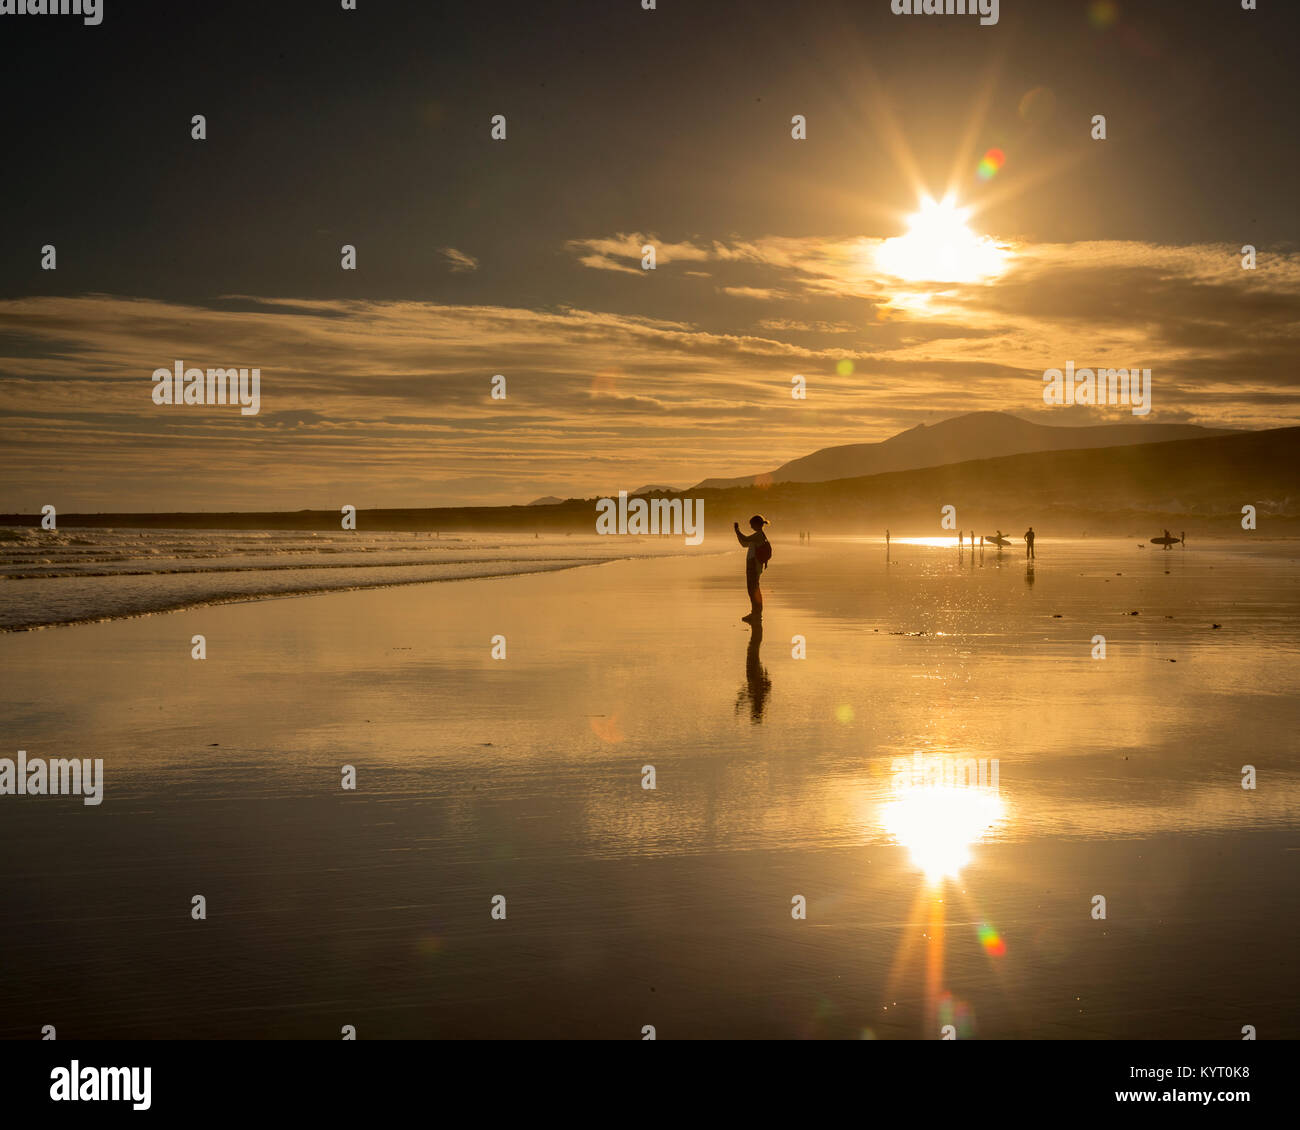 Girl in silhouette taking a photo while standing on reflective wet sand on Keel beach on the west coast of Ireland - Stock Image